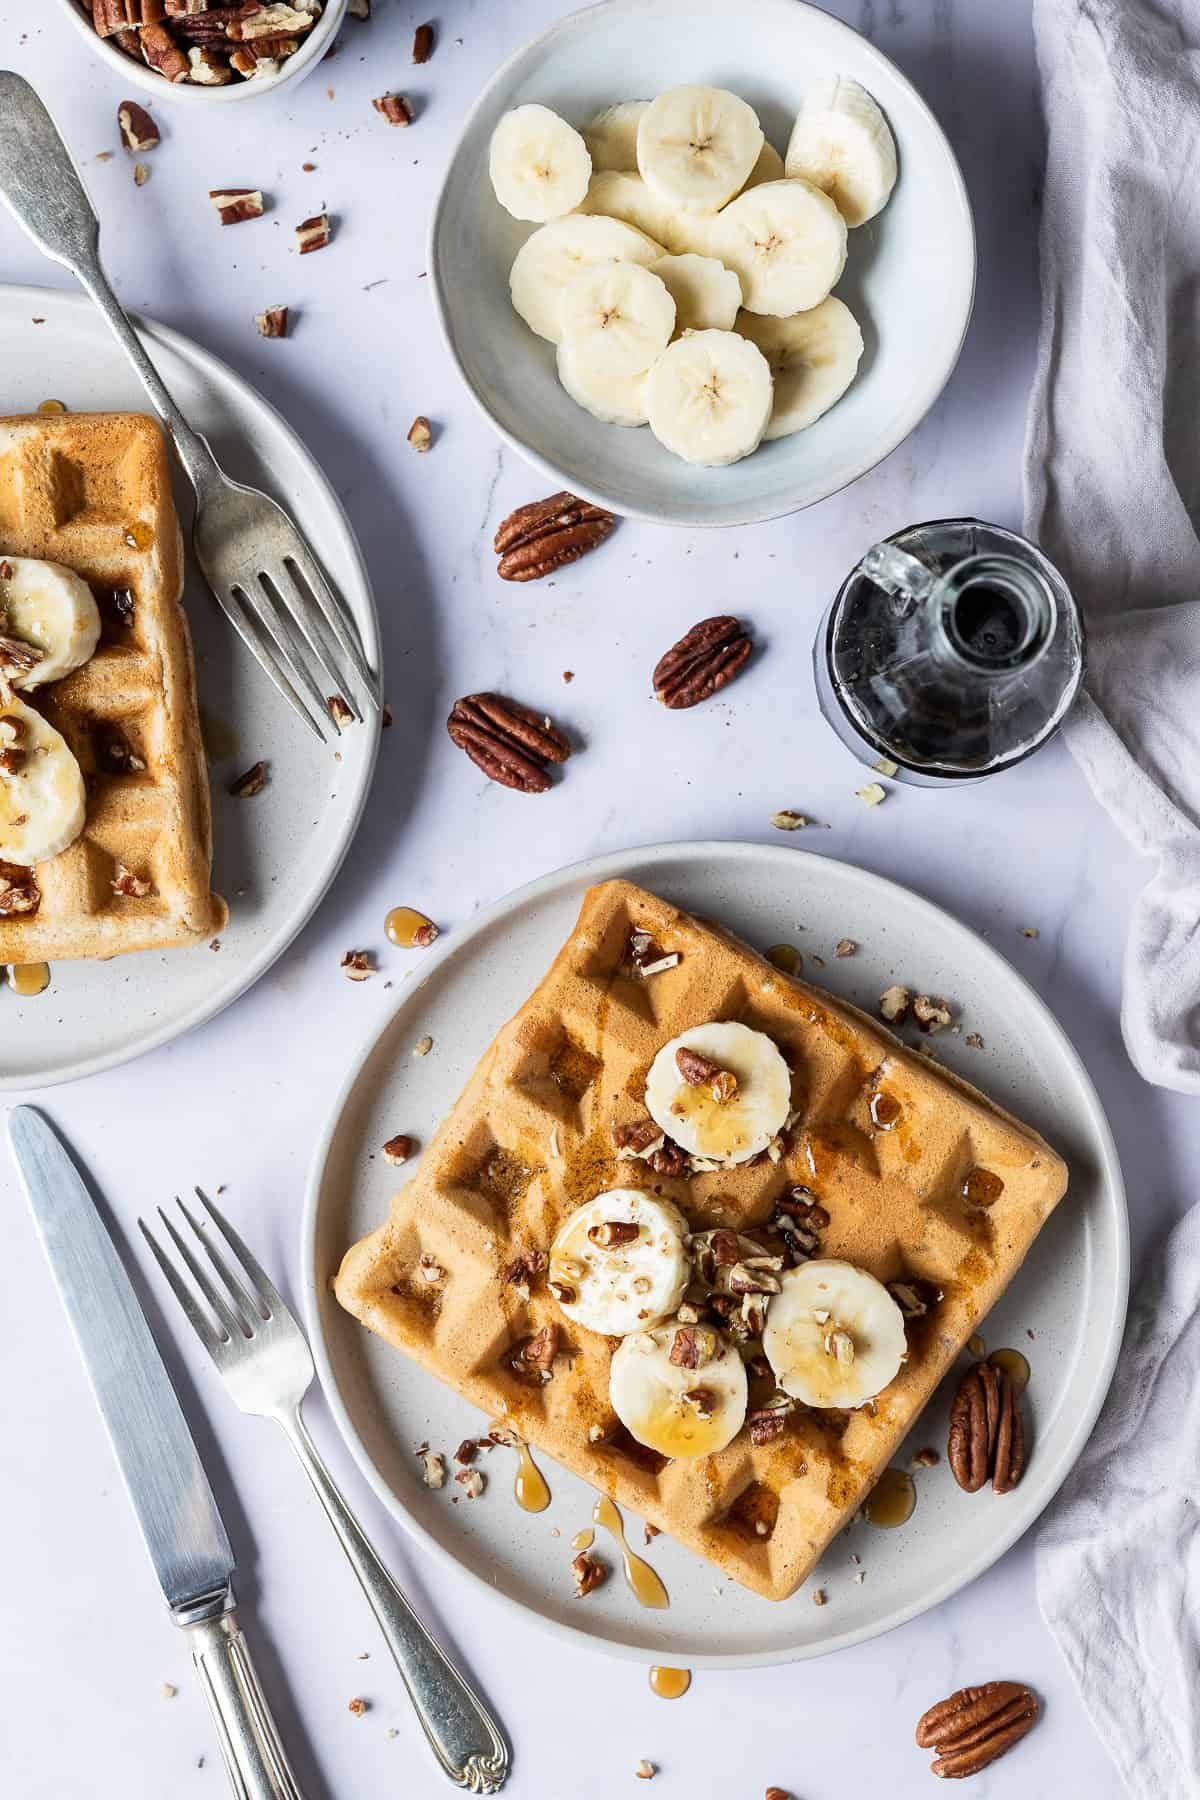 two plates of vegan banana waffles with sliced banana, pecans and maple syrup on a marble background.